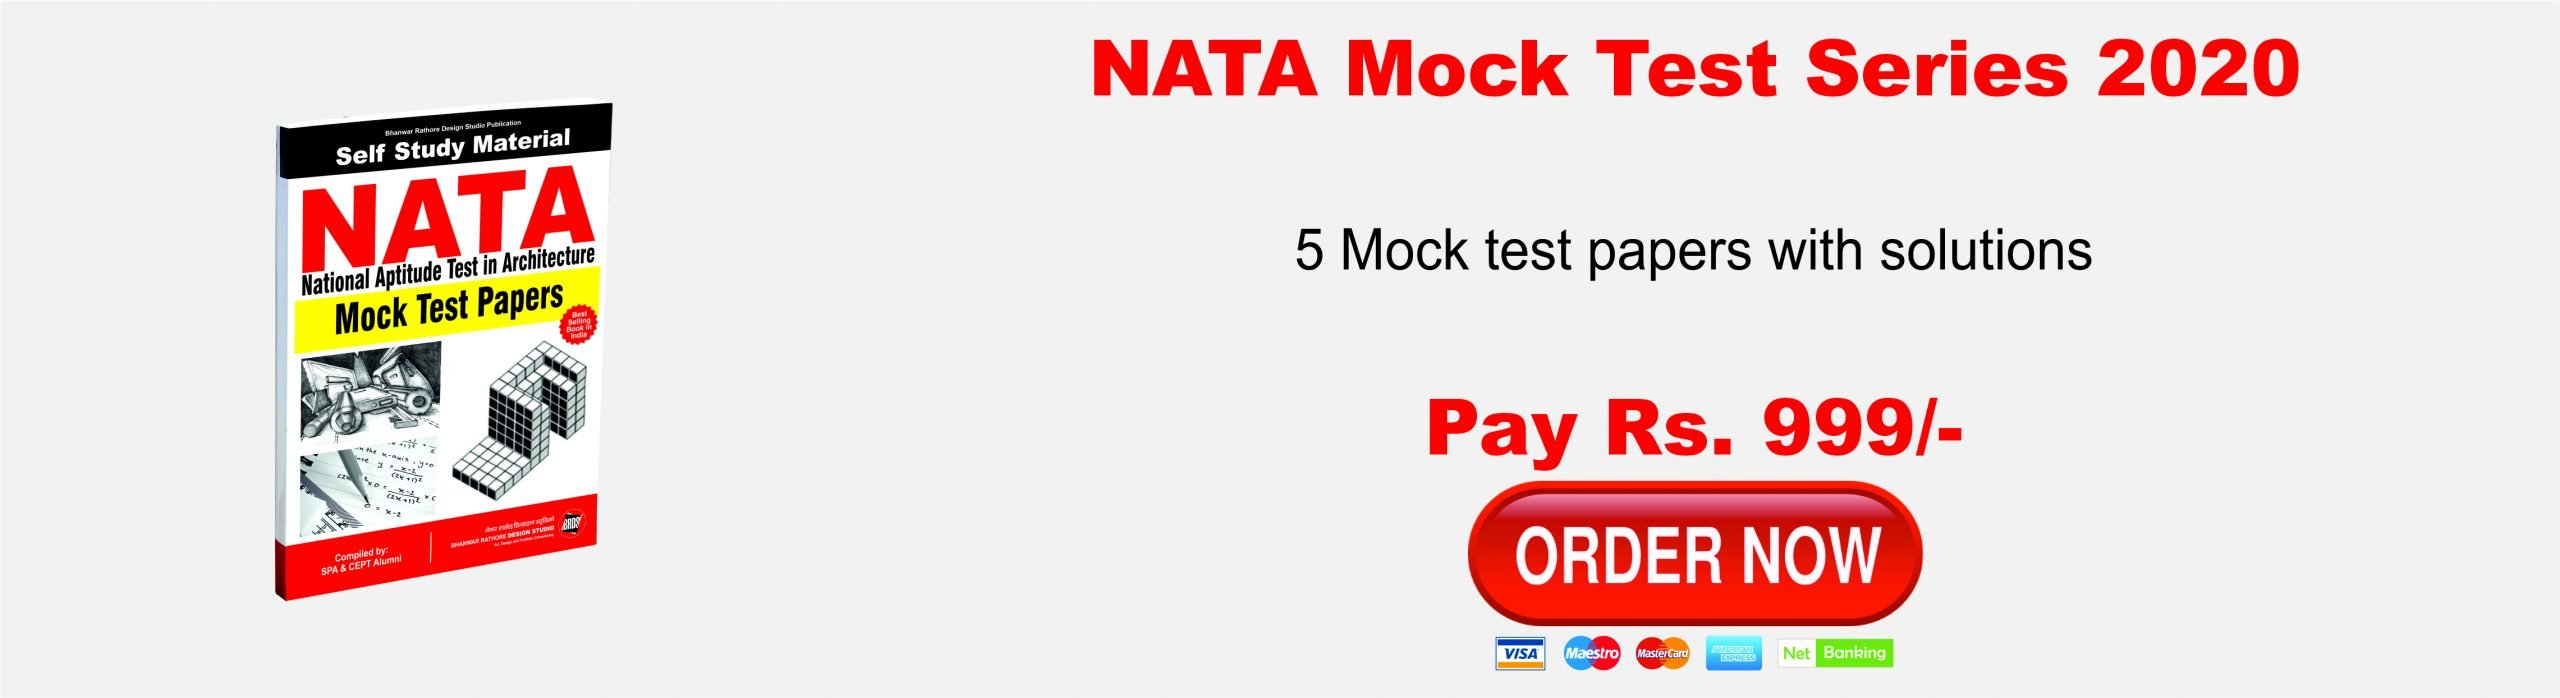 NATA Mock Test Series 2020